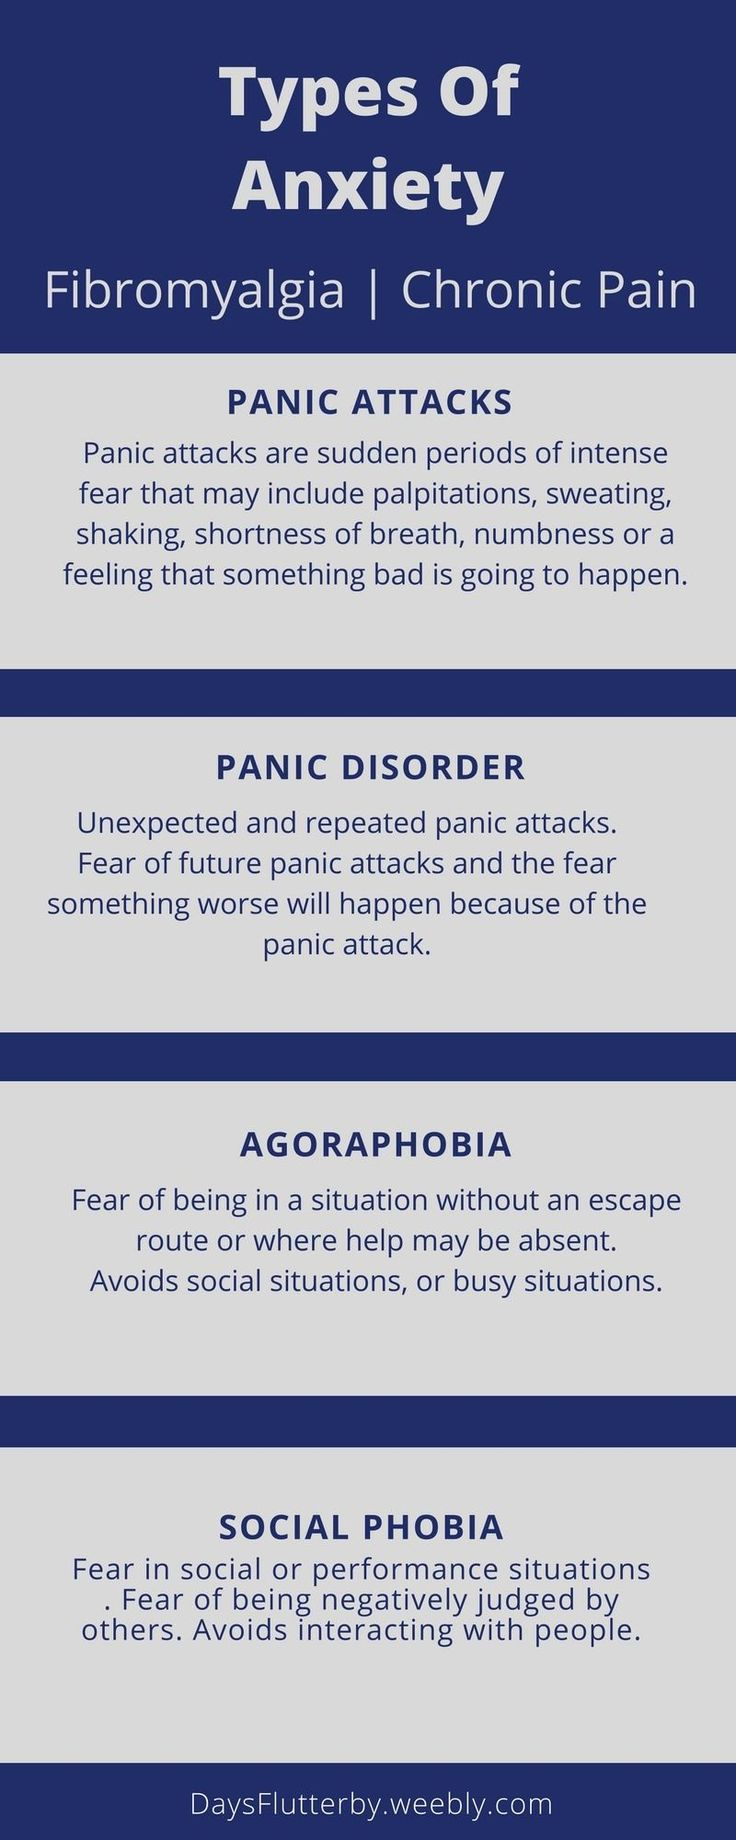 types of anxiety disorders and it s People with anxiety disorders experience persistent fear, worry, or dread, which is out of proportion to the circumstances, causes them significant distress and/or.